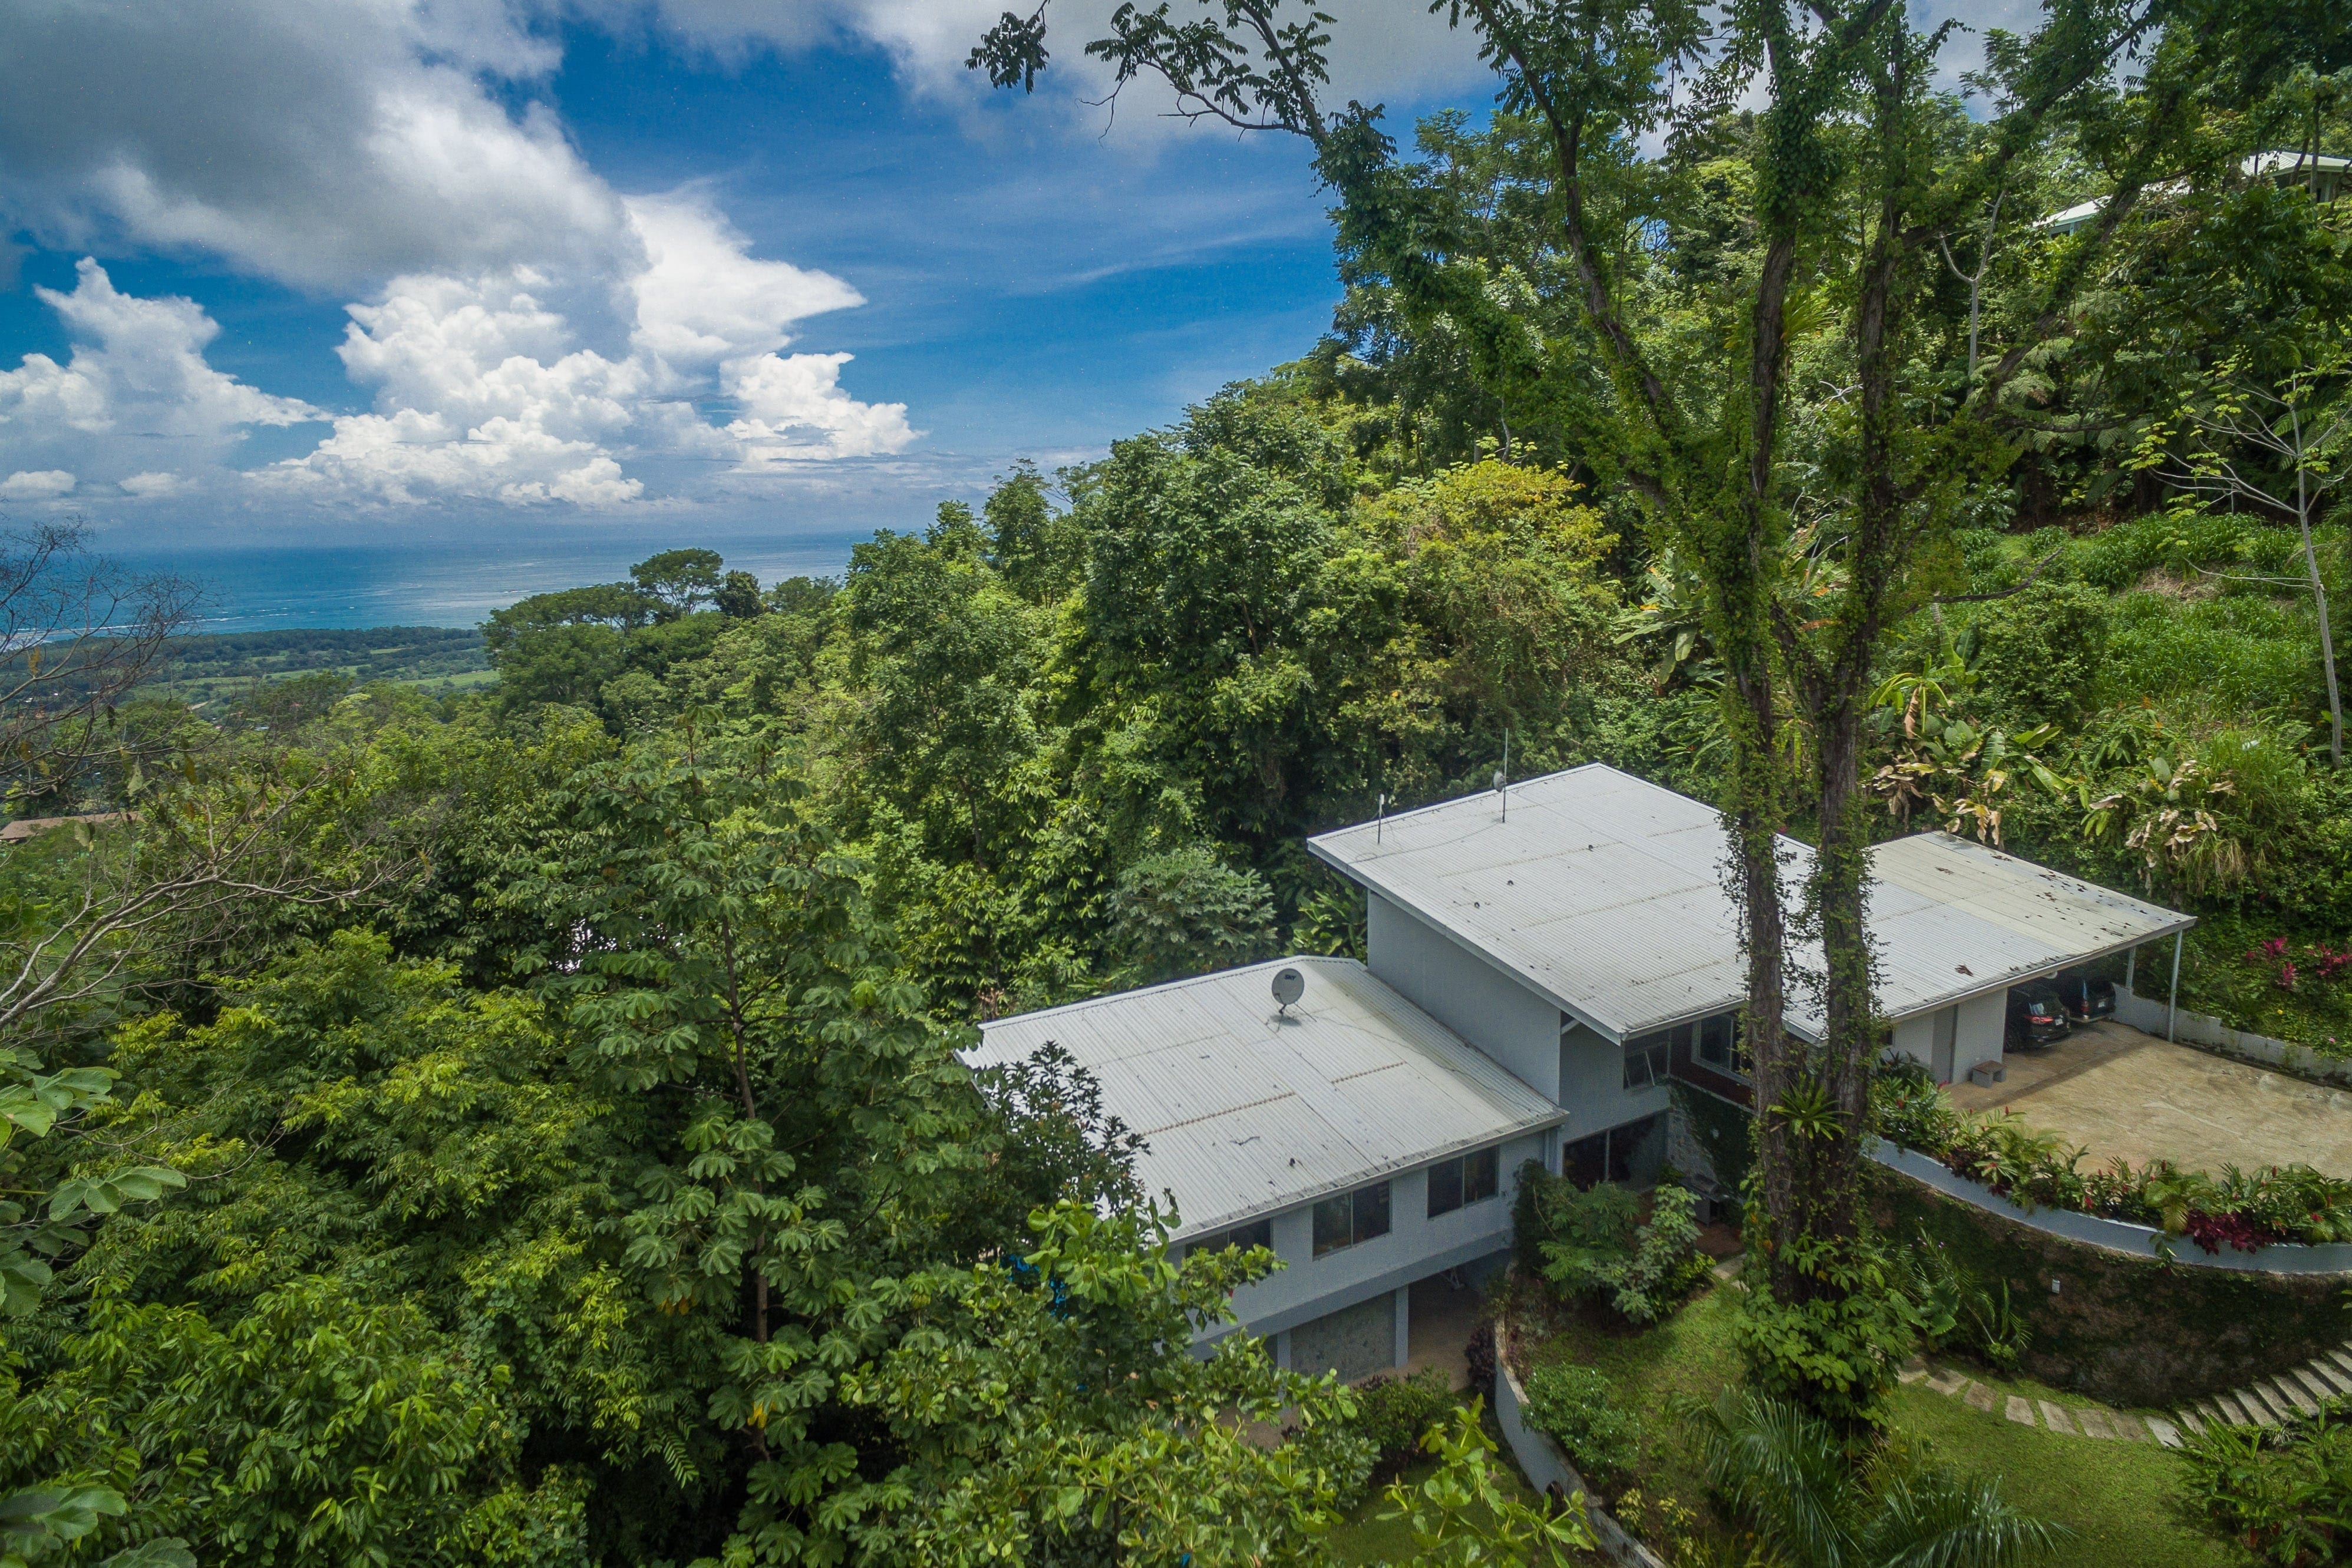 1.65 ACRES - 4 Bedroom Modern Home With Pool And Incredible Whales Tale Ocean Views!!!